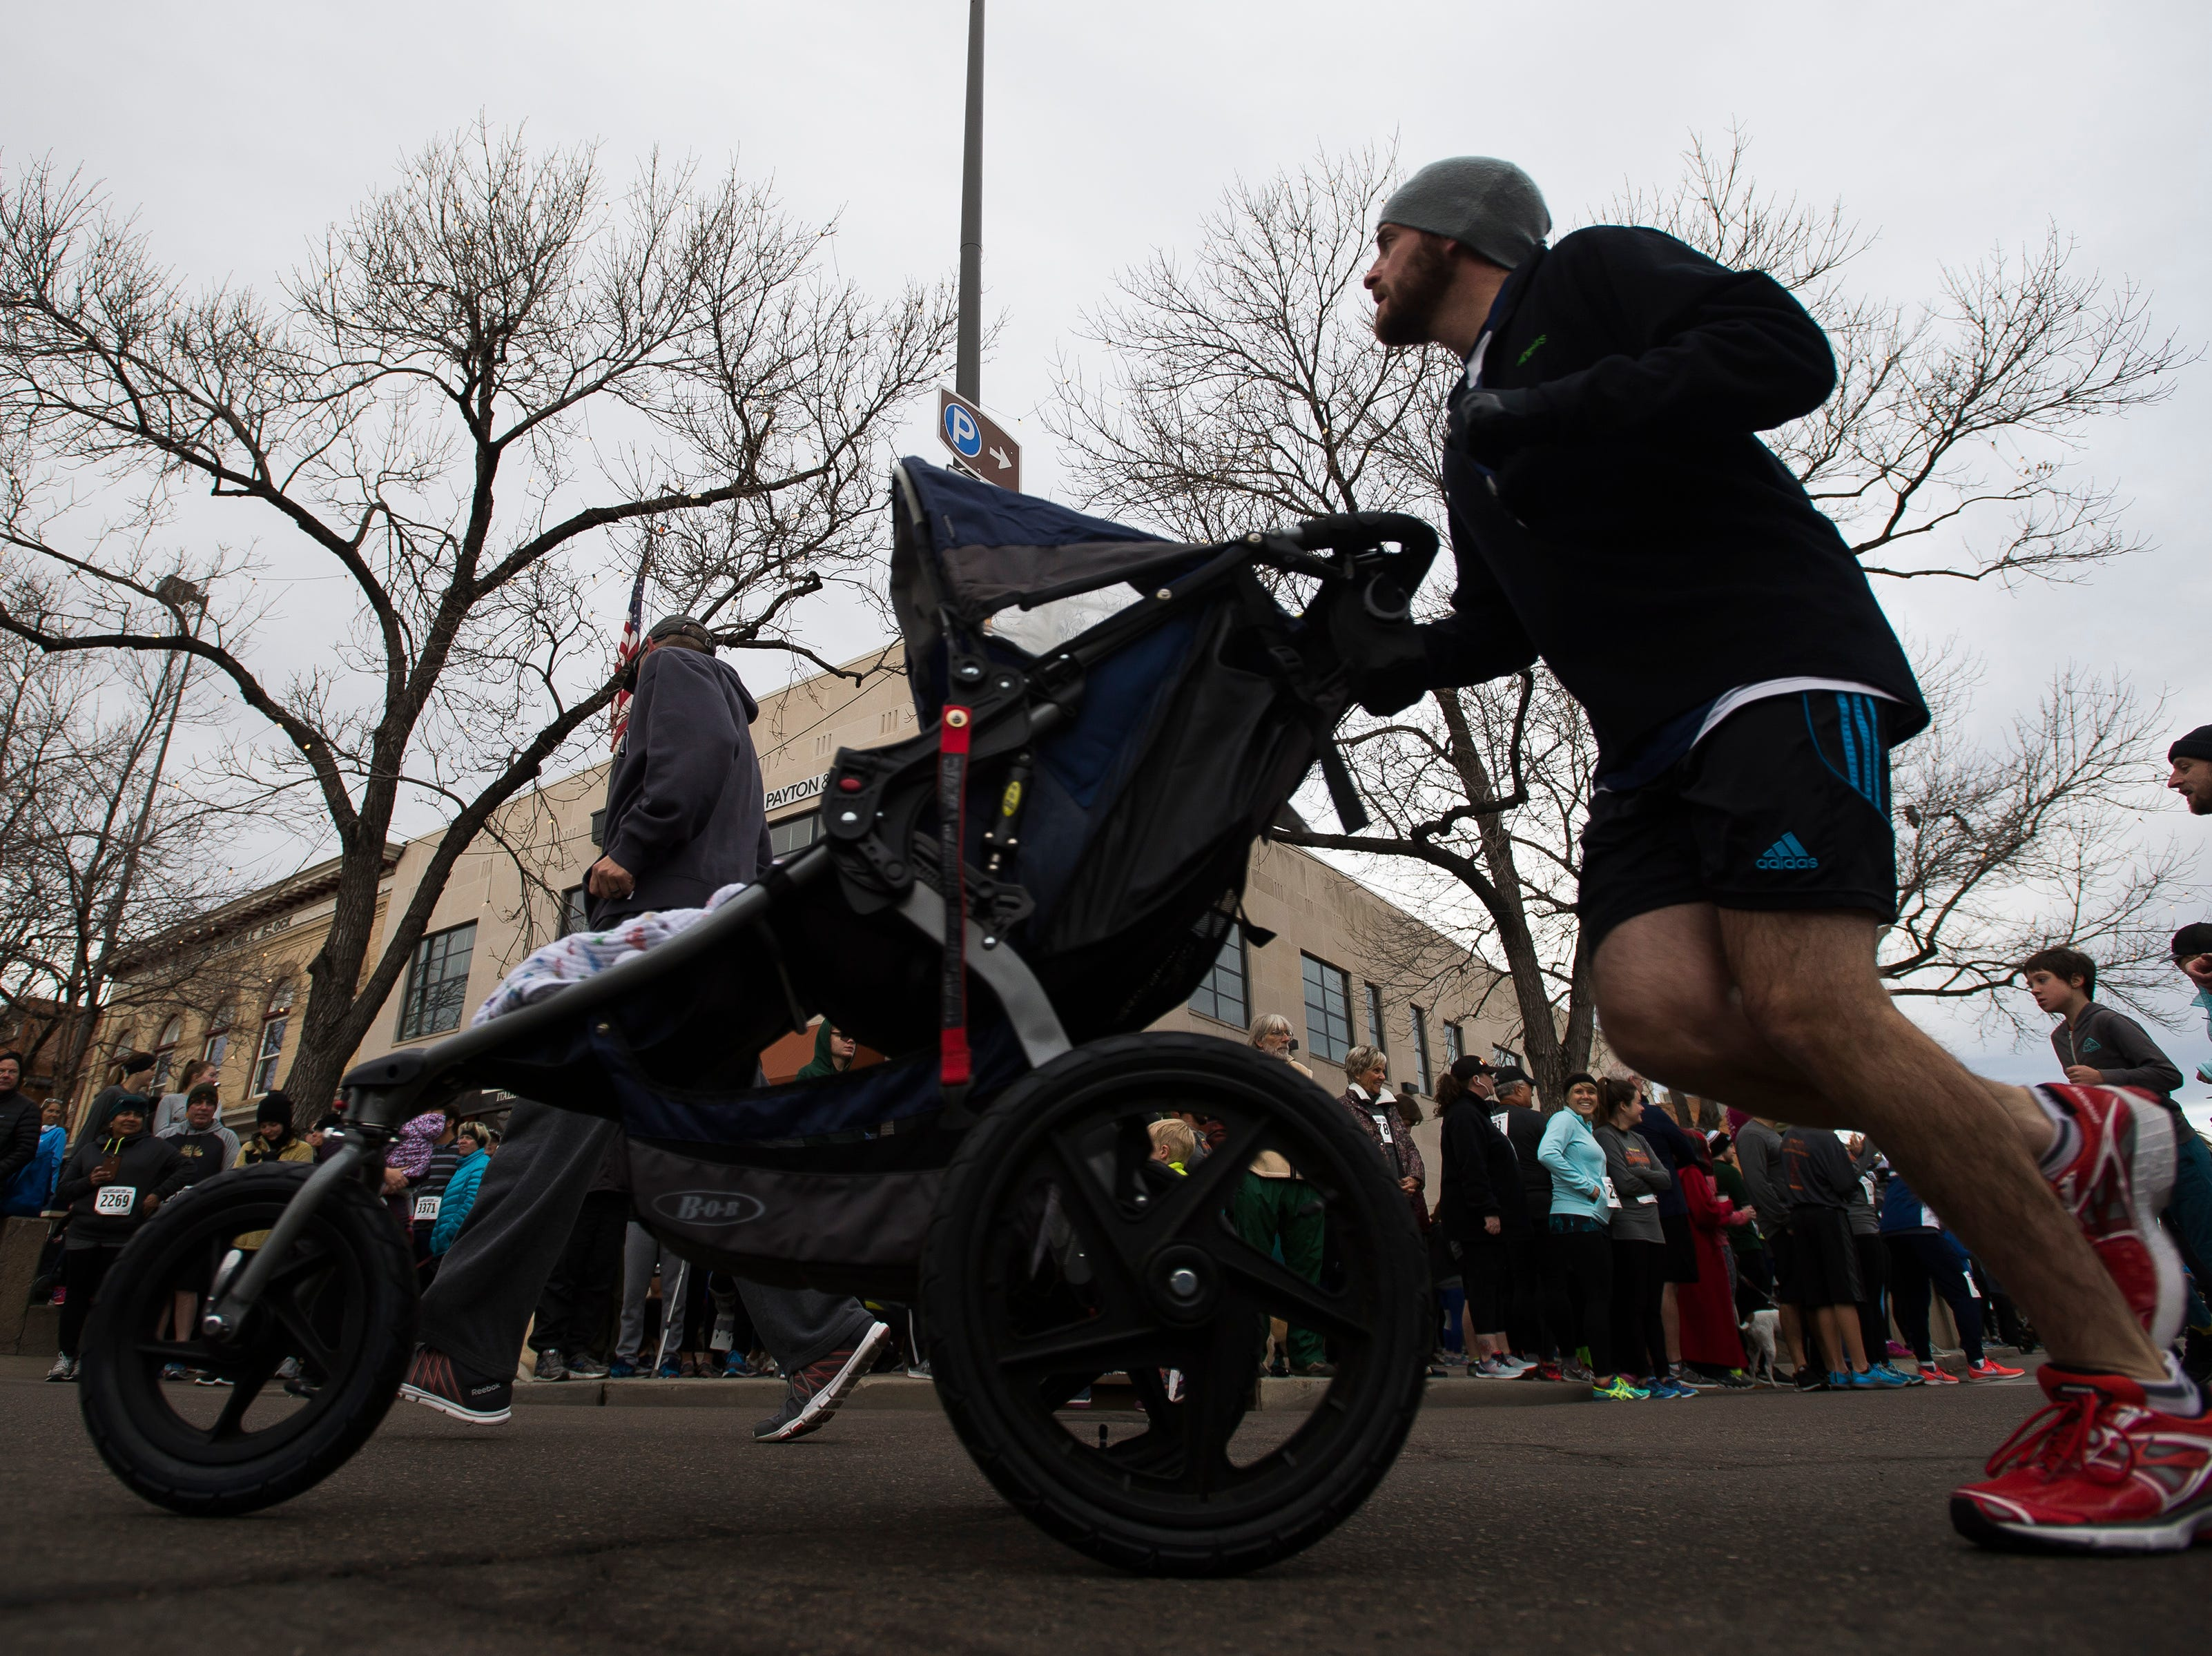 A runner pushes a stroller during the Fort Collins Thanksgiving Day Run on Thursday, Nov. 22, 2018, in Old Town Fort Collins, Colo.